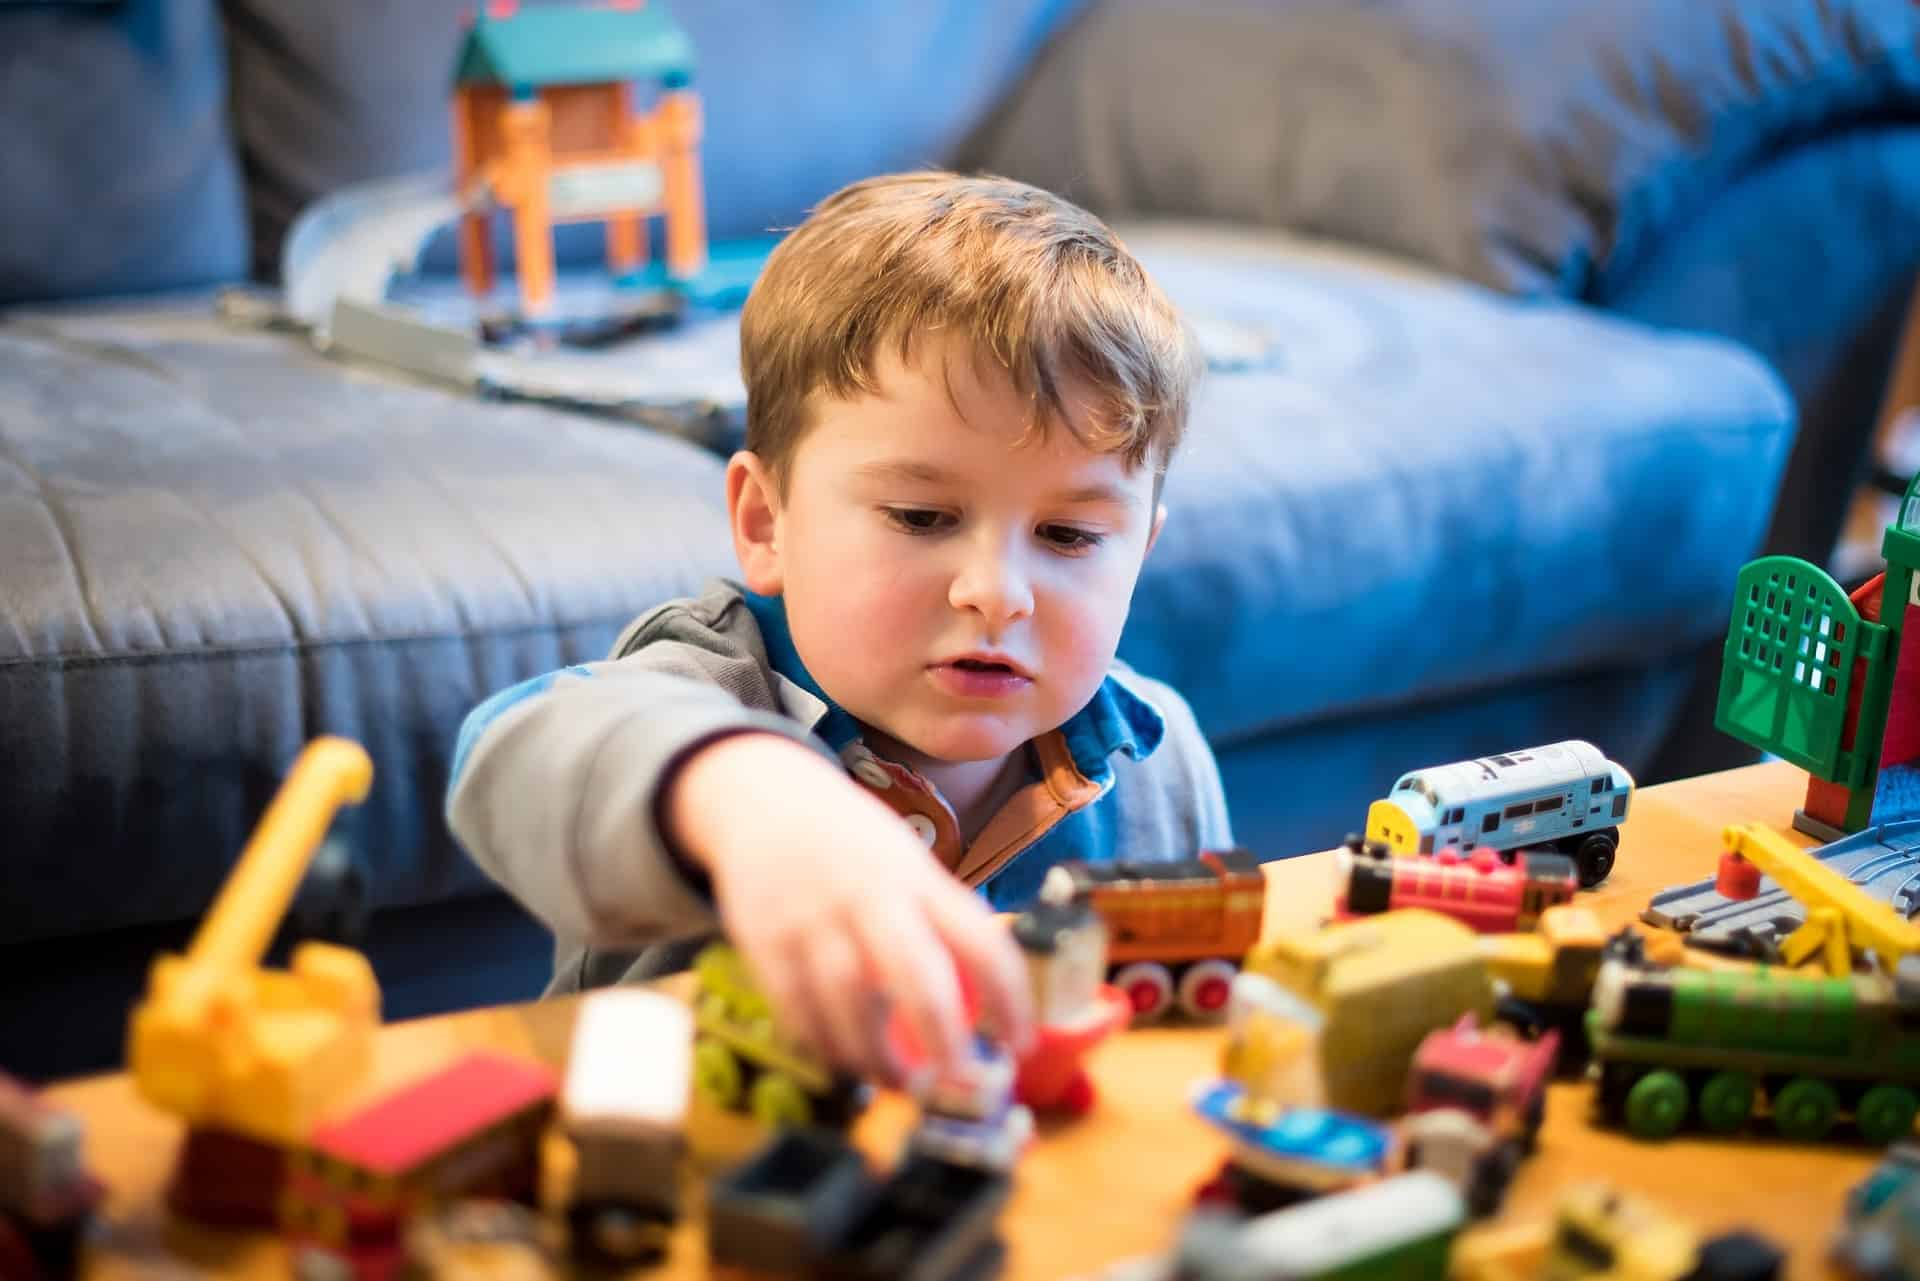 From lego and paint, to furniture dragging and running in the house - if you have kids, you need kid-friendly flooring in your home!